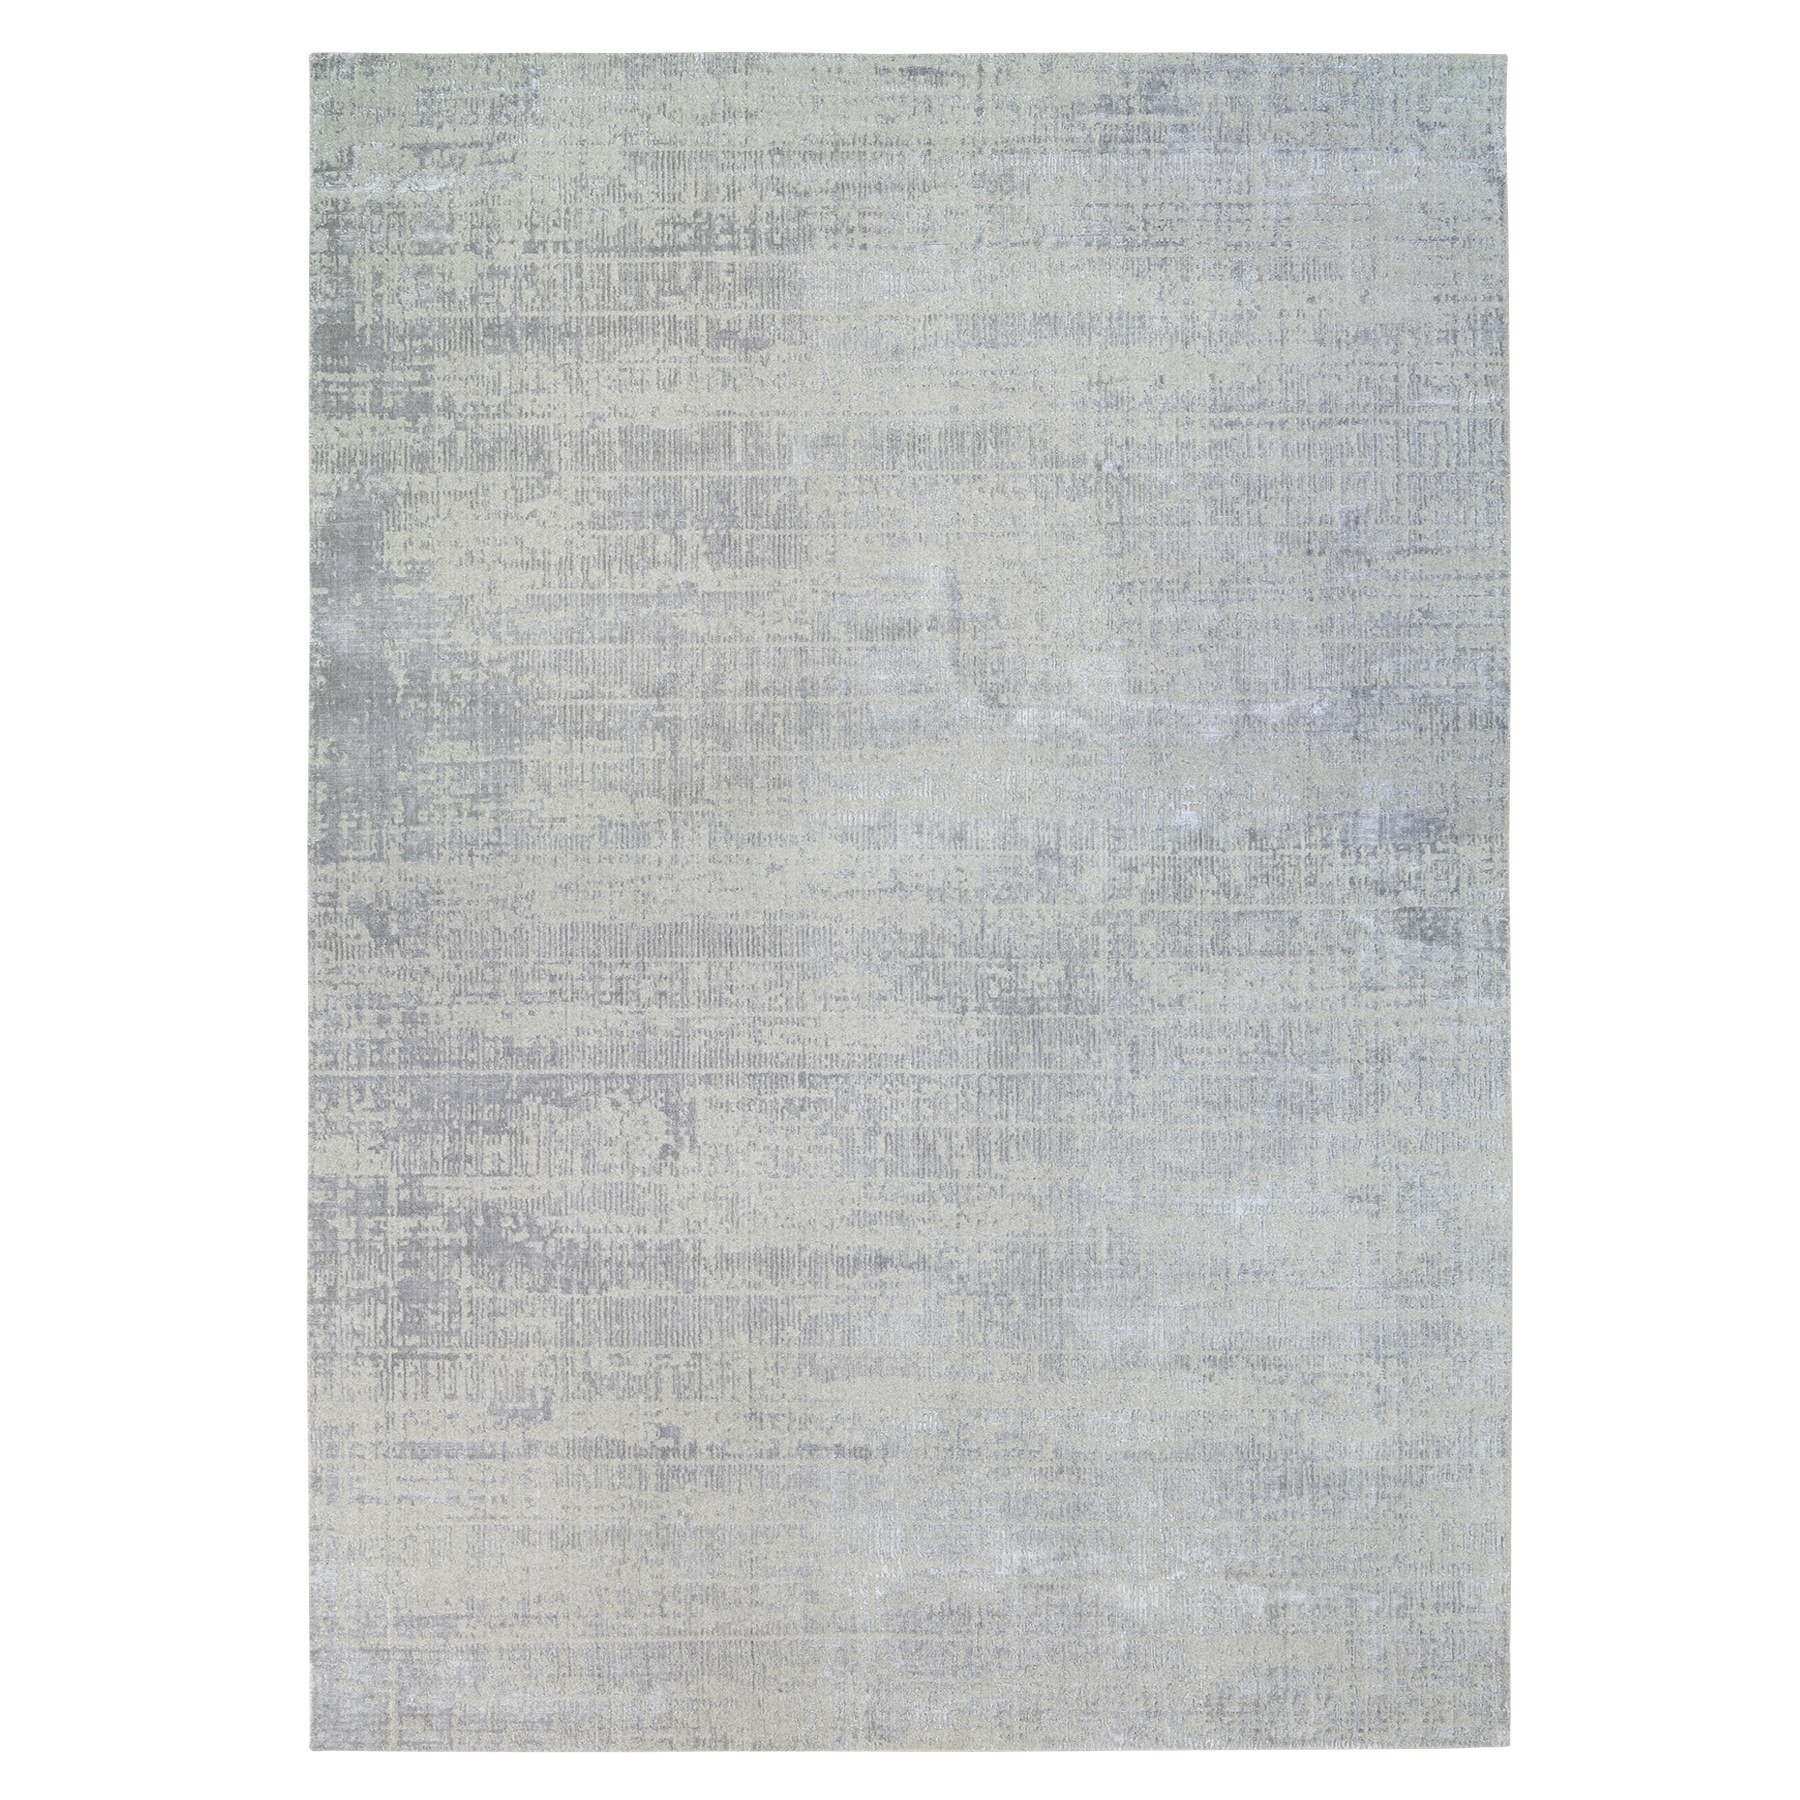 Mid Century Modern Collection Hand Loomed Grey Rug No: 1125772